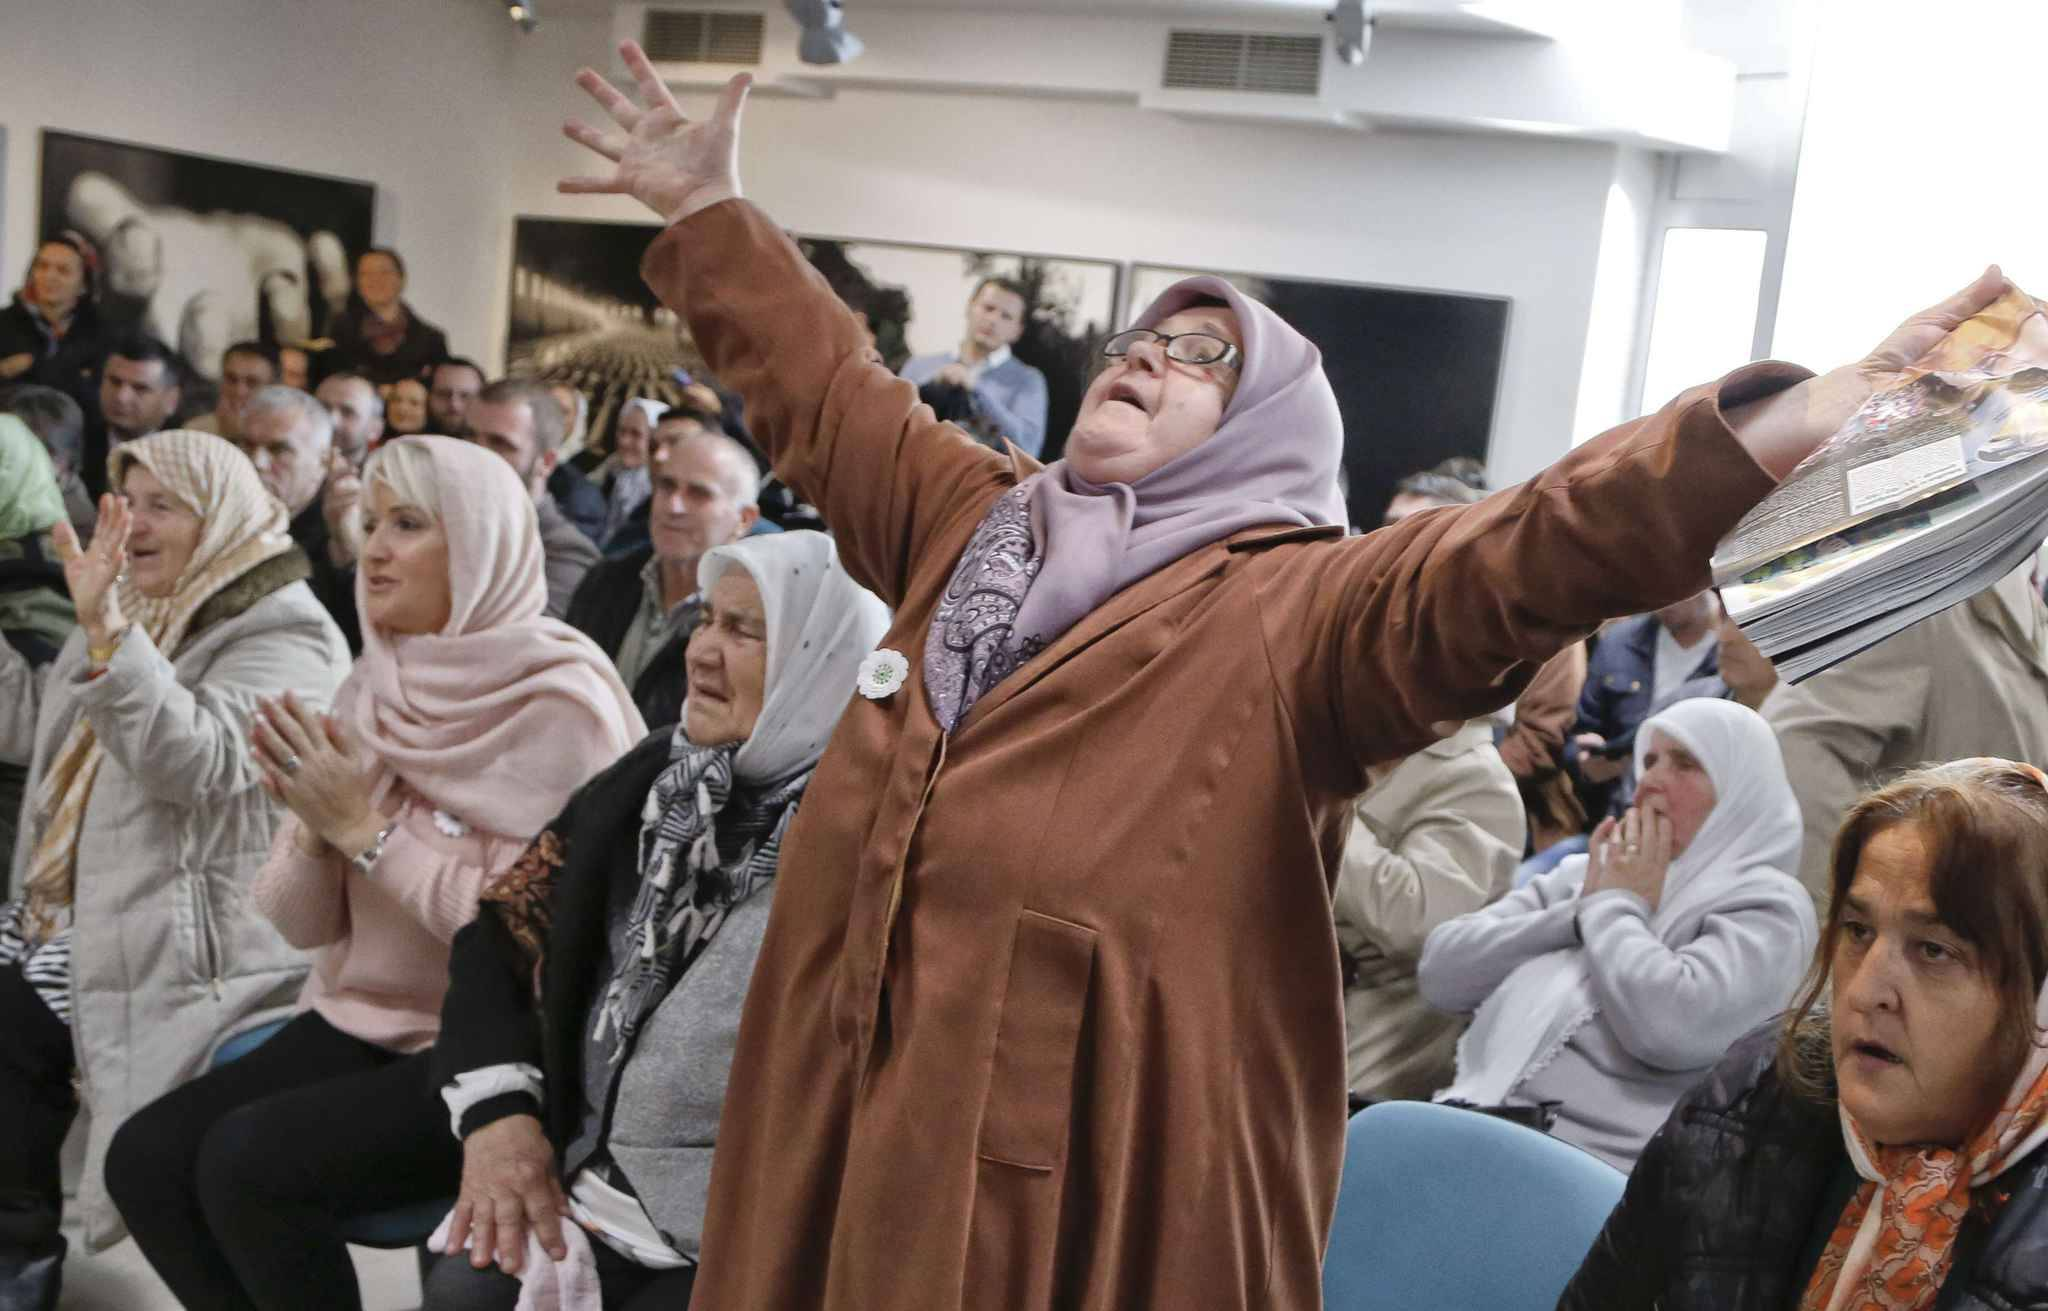 Ediba Salihovic, right, stands up and raises her hands as she reacts along with other Bosnian women upon hearing the sentence at the end of former Bosnian Serb military chief Gen. Ratko Mladic's trial at the memorial center in Potocari, near Srebrenica, Bosnia, Wednesday, Nov. 22, 2017. A U.N. court has convicted former Bosnian Serb military chief Gen. Ratko Mladic of genocide and crimes against humanity and sentenced him to life in prison for atrocities perpetrated during Bosnia's 1992-1995 war.